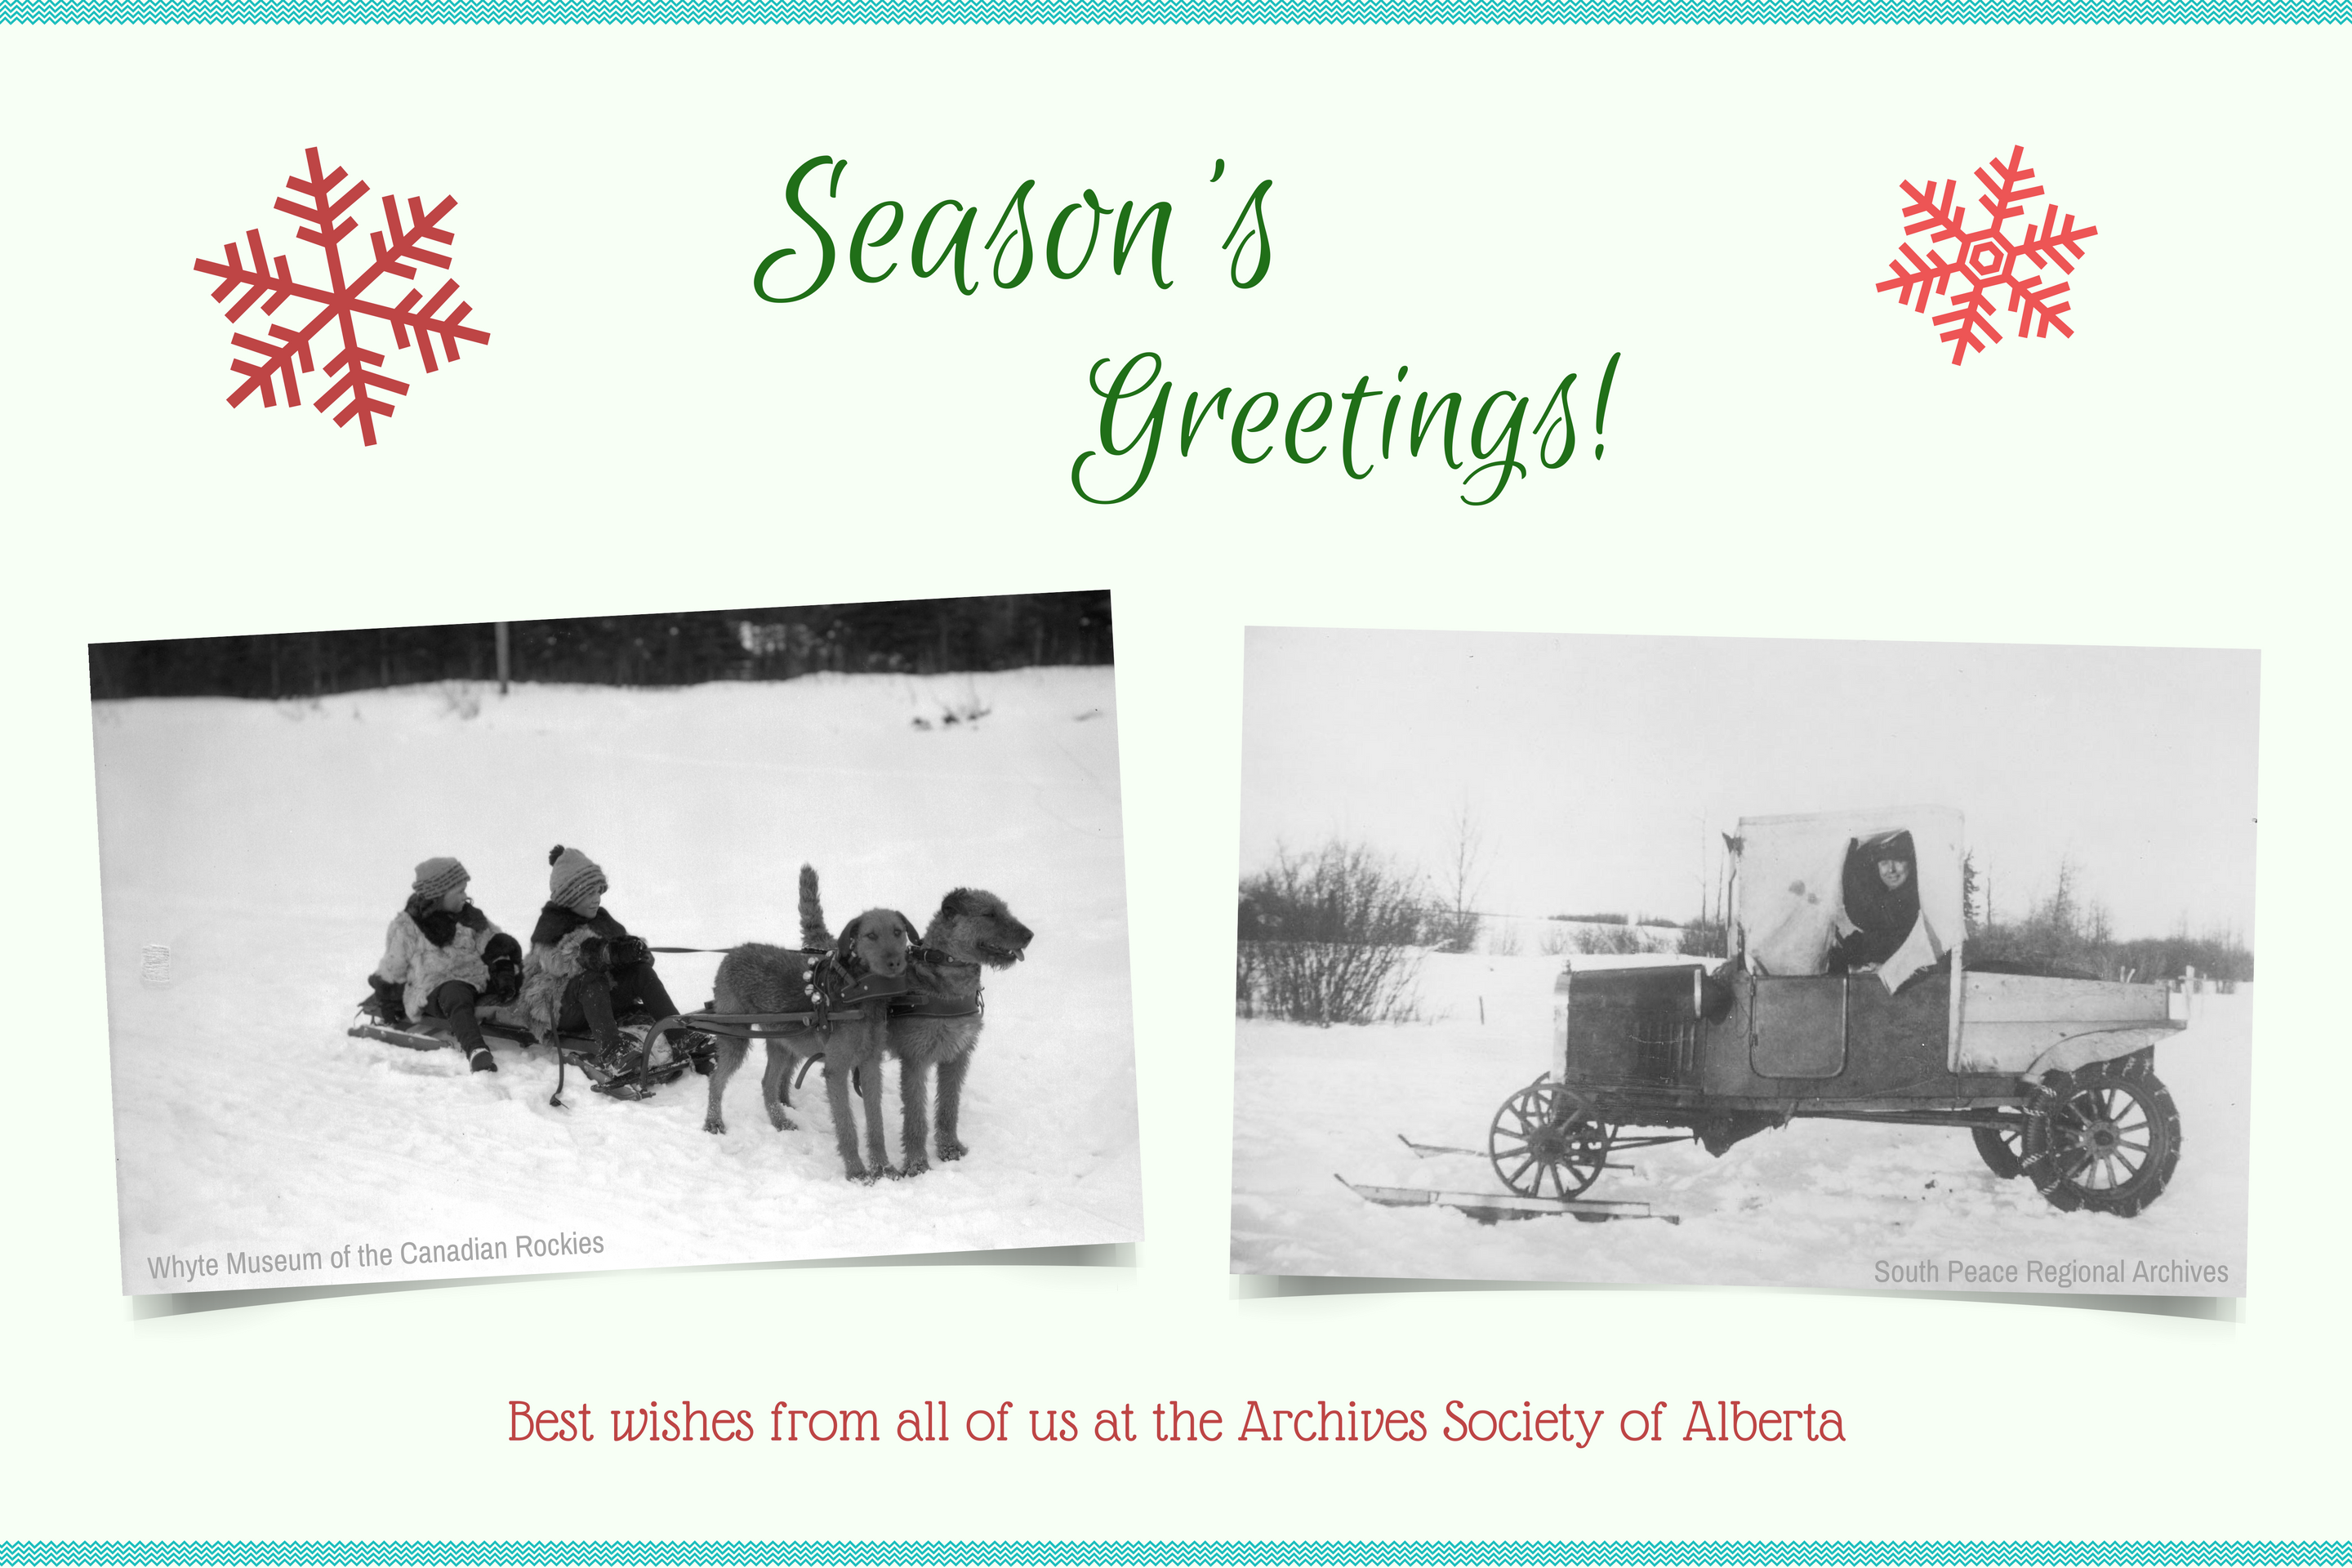 Season's greetings and best wishes from all of us at the Archives Society of Alberta